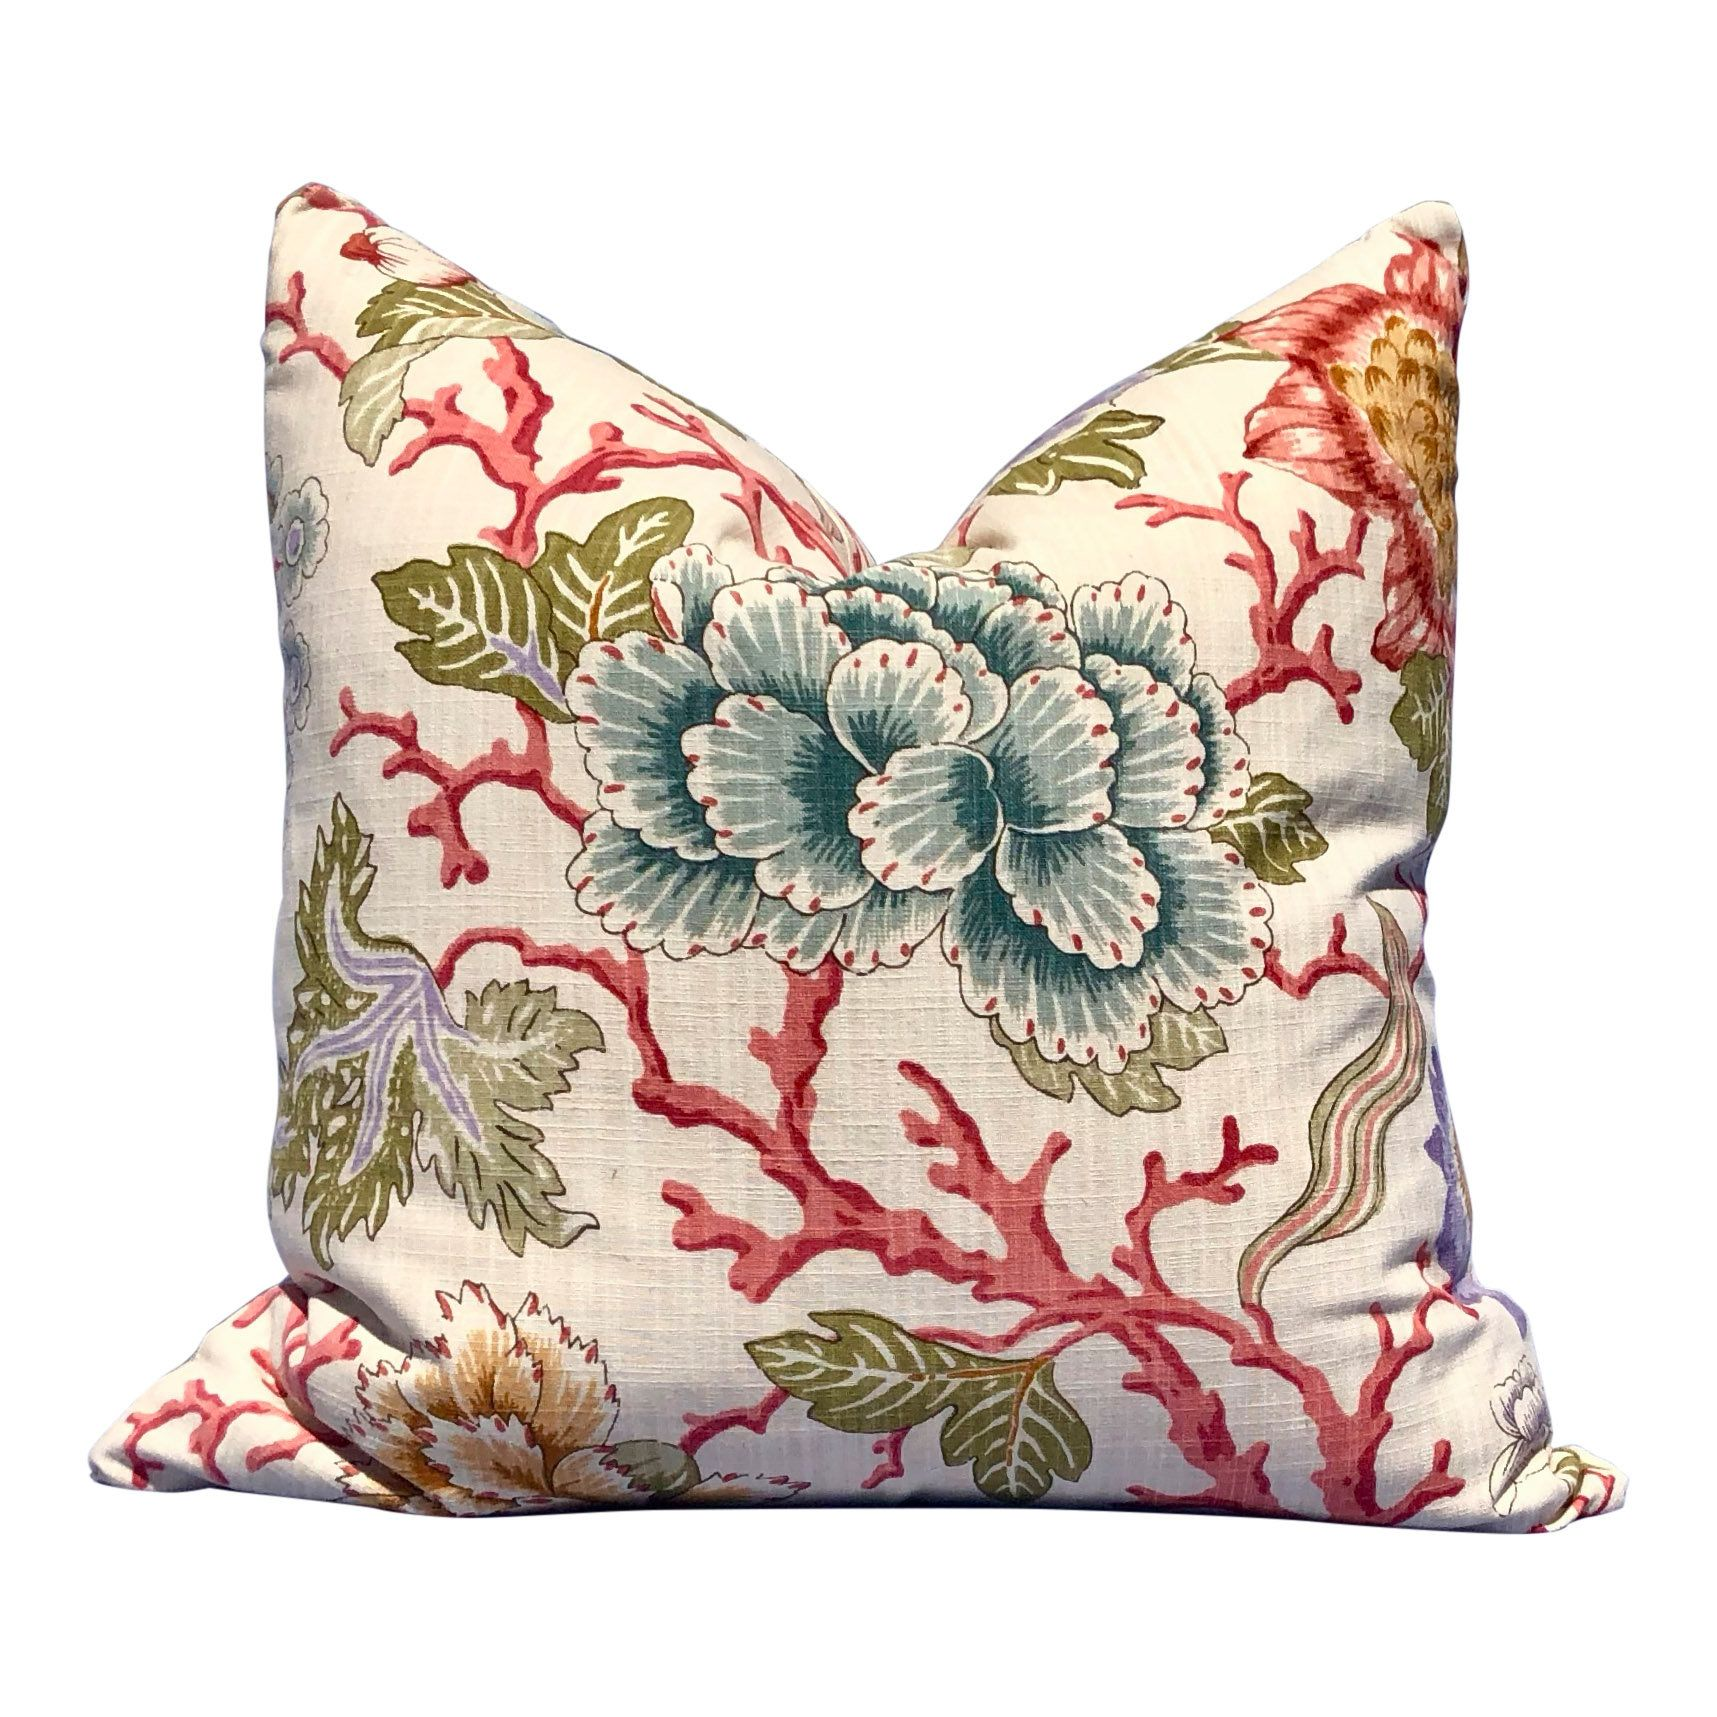 Coral floral pillow cover in cream coral aqua green in